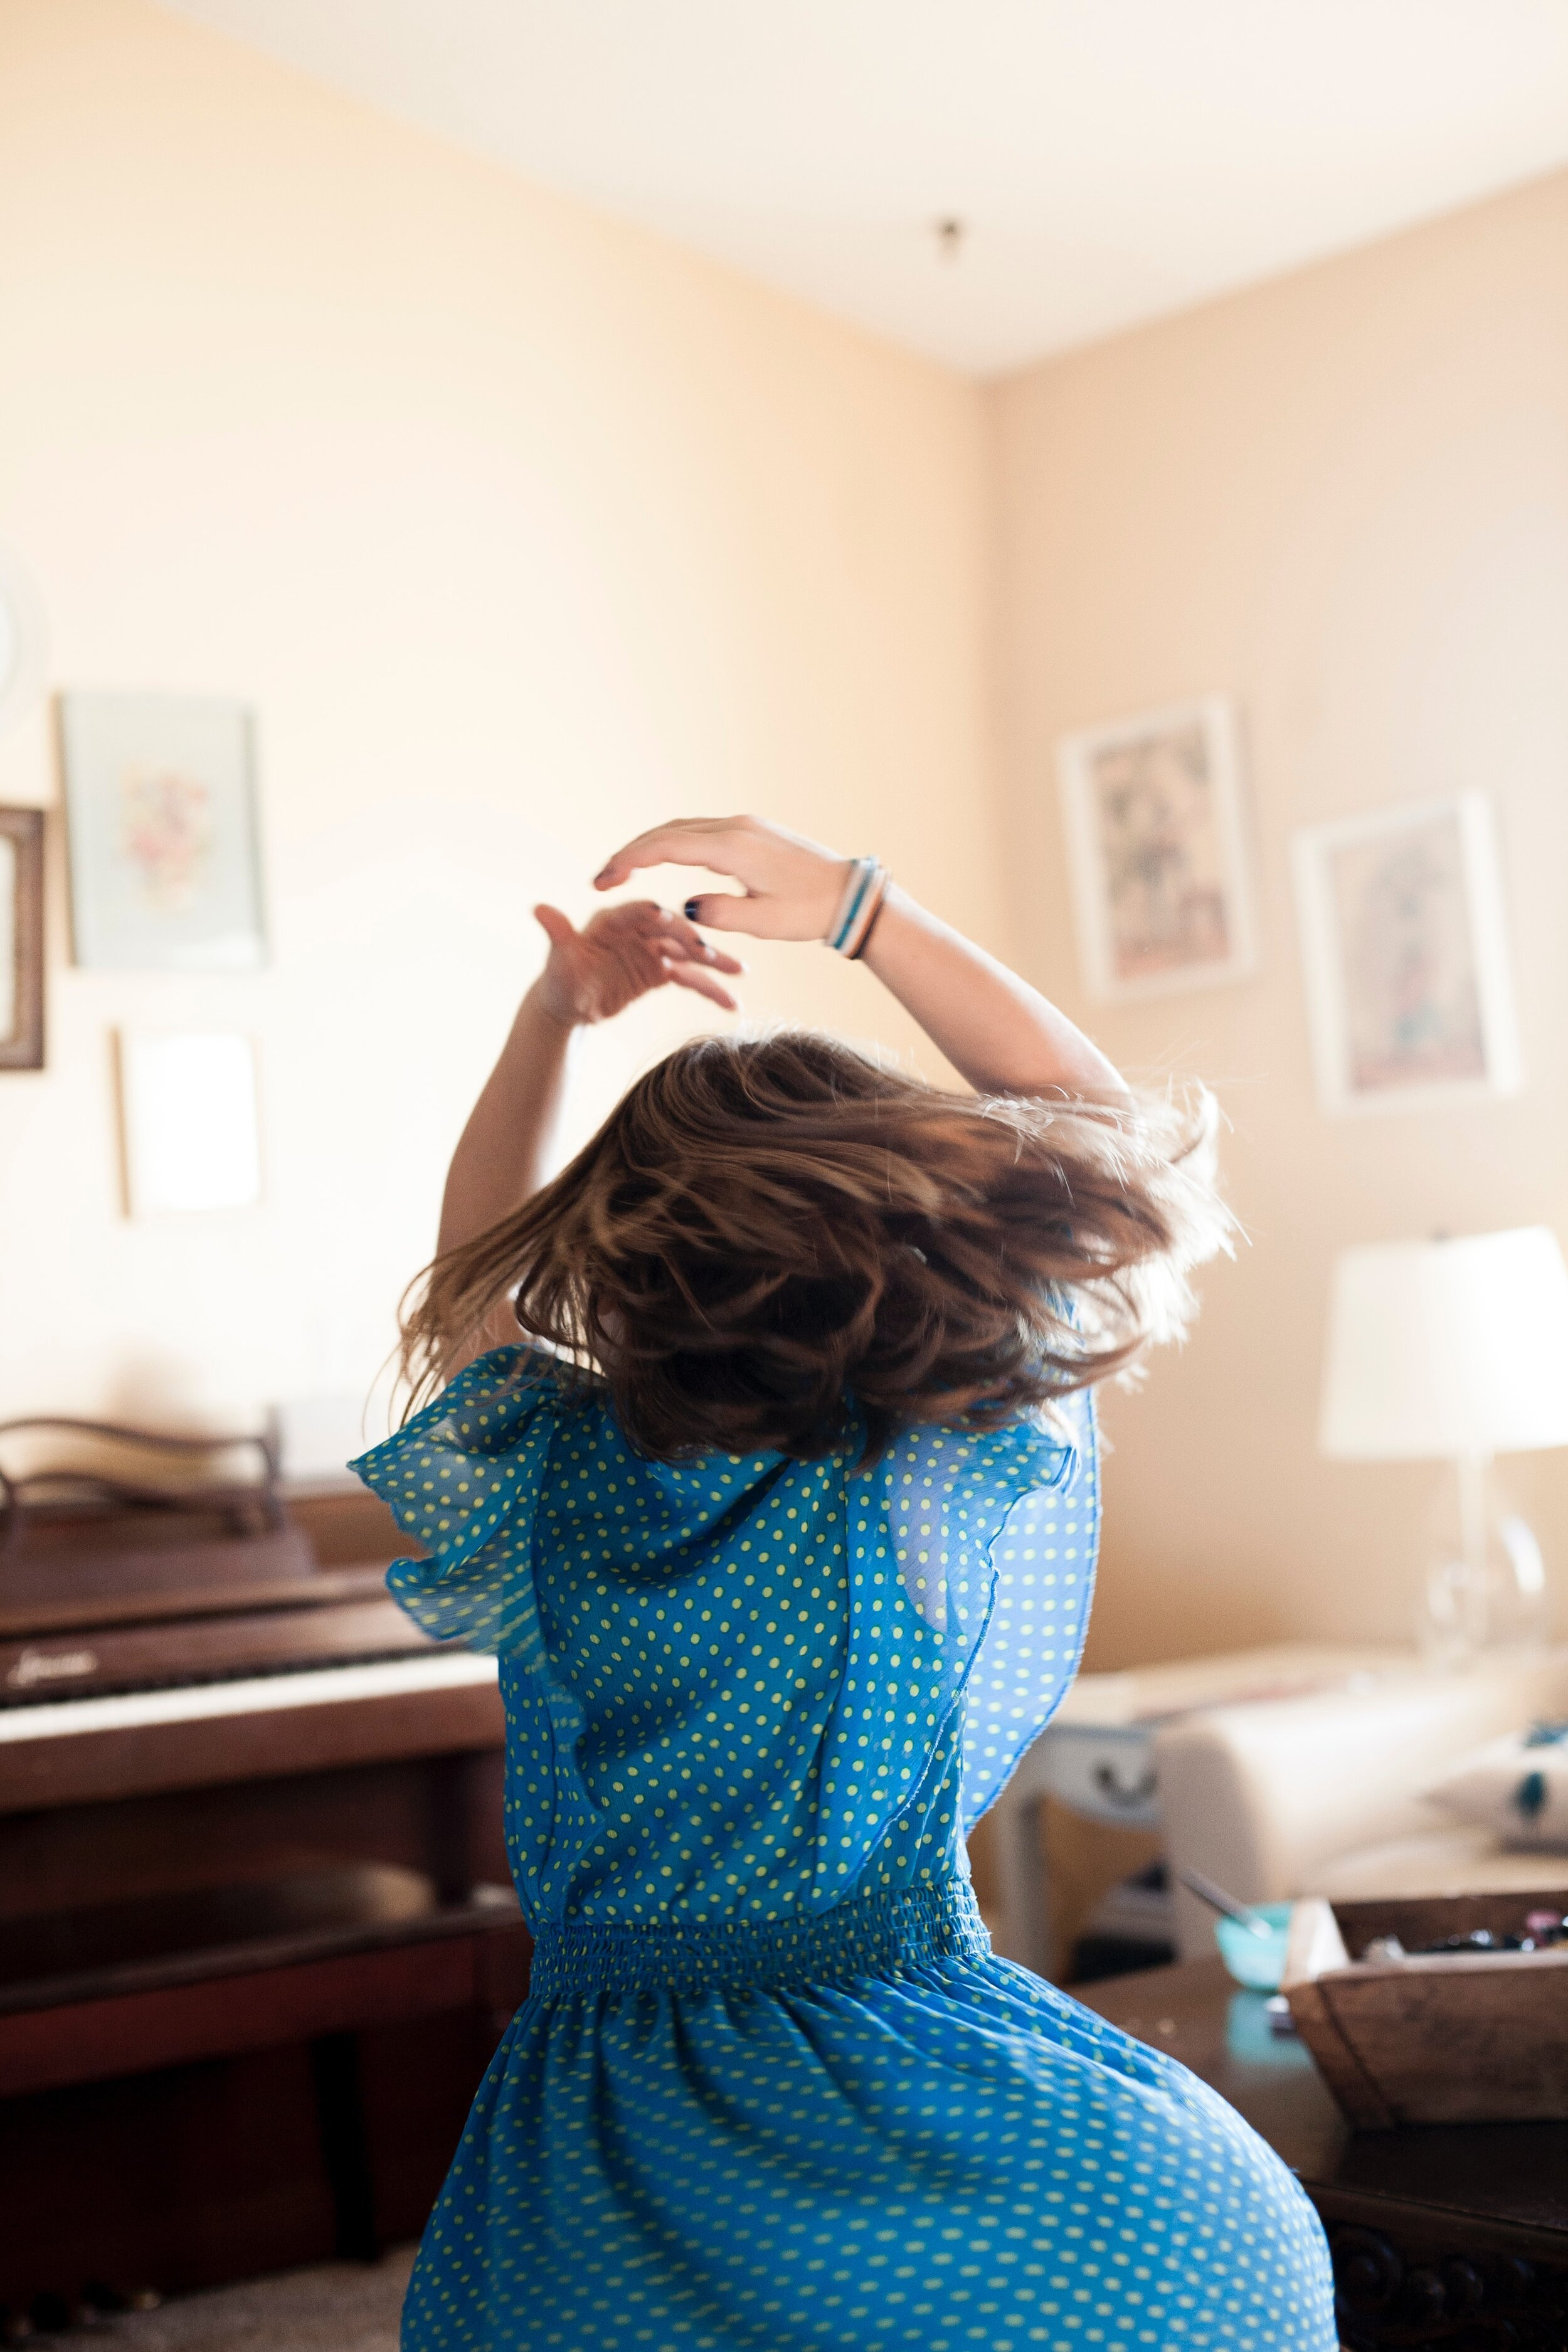 """Photo by  Laura Fuhrman  on  Unsplash  """"It was a normal Saturday morning at our house, and I pulled out my camera to document the happenings of our morning. My middle daughter put on some music and started dancing. The morning sun was shining through the windows beautifully as I caught her in mid twirl."""""""